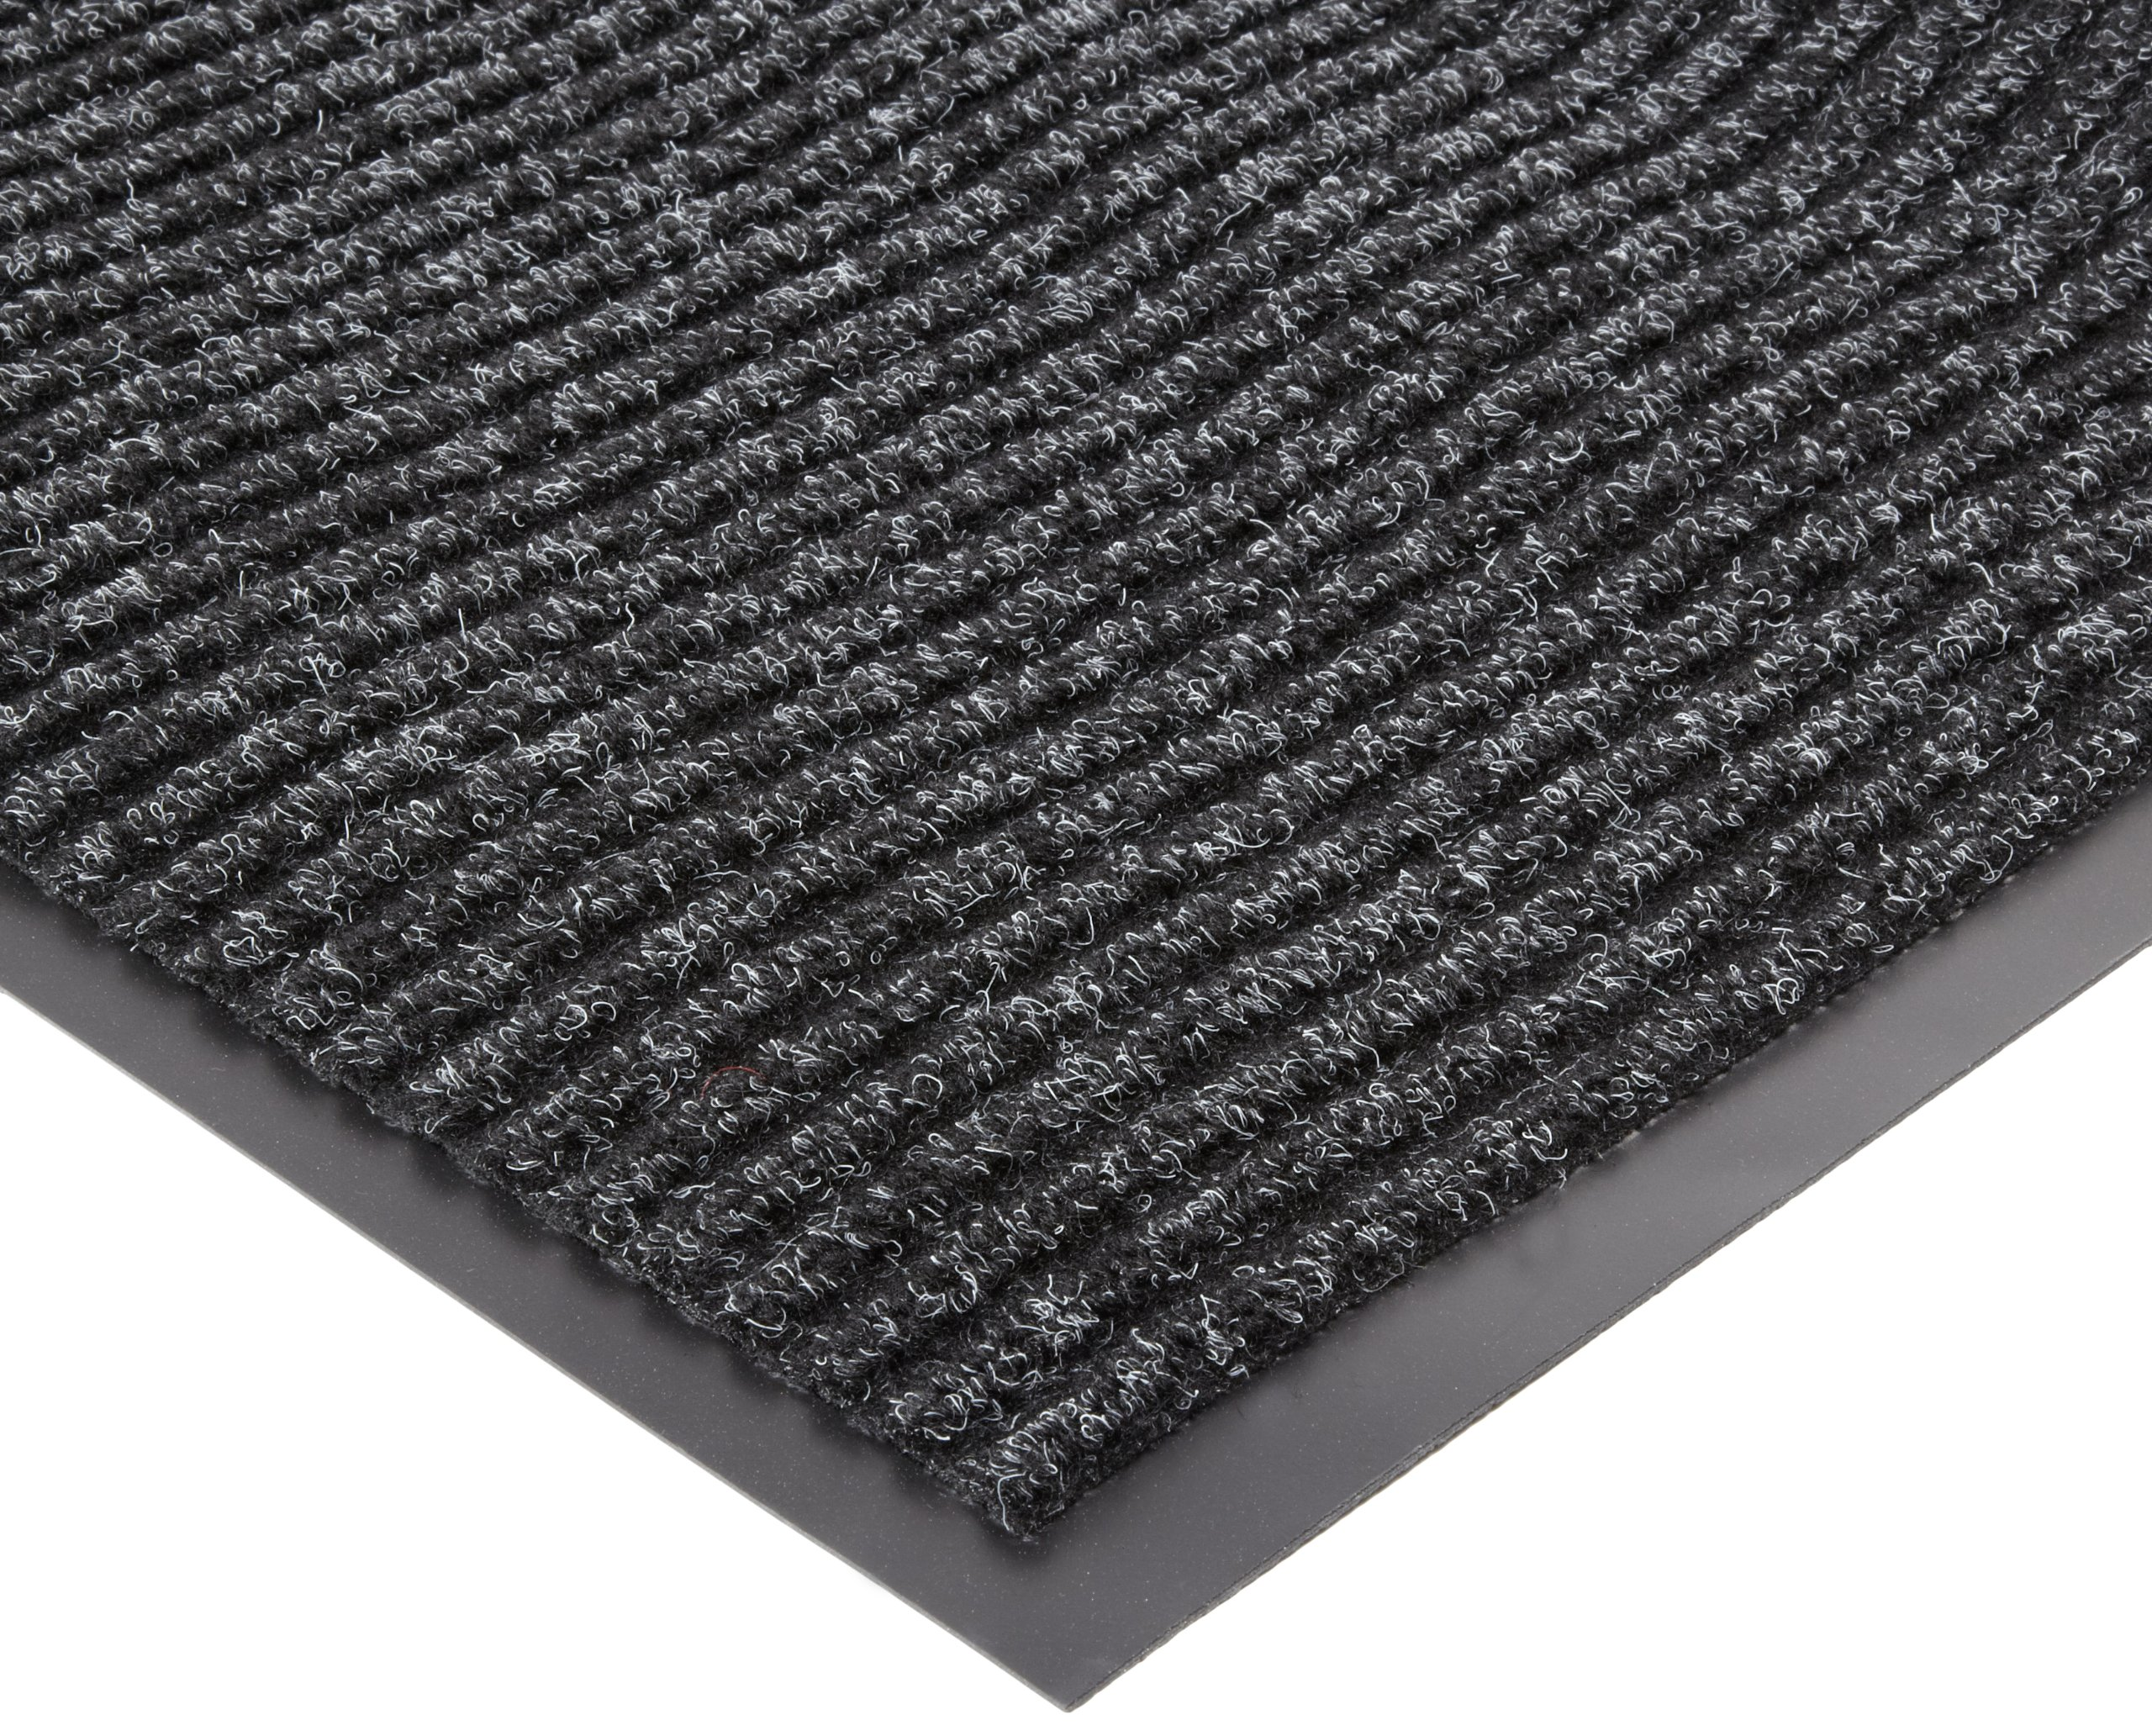 NoTrax 109 Brush Step Entrance Mat, for Lobbies and Indoor Entranceways, 4' Width x 6' Length x 3/8'' Thickness, Charcoal by NoTrax Floor Matting (Image #1)